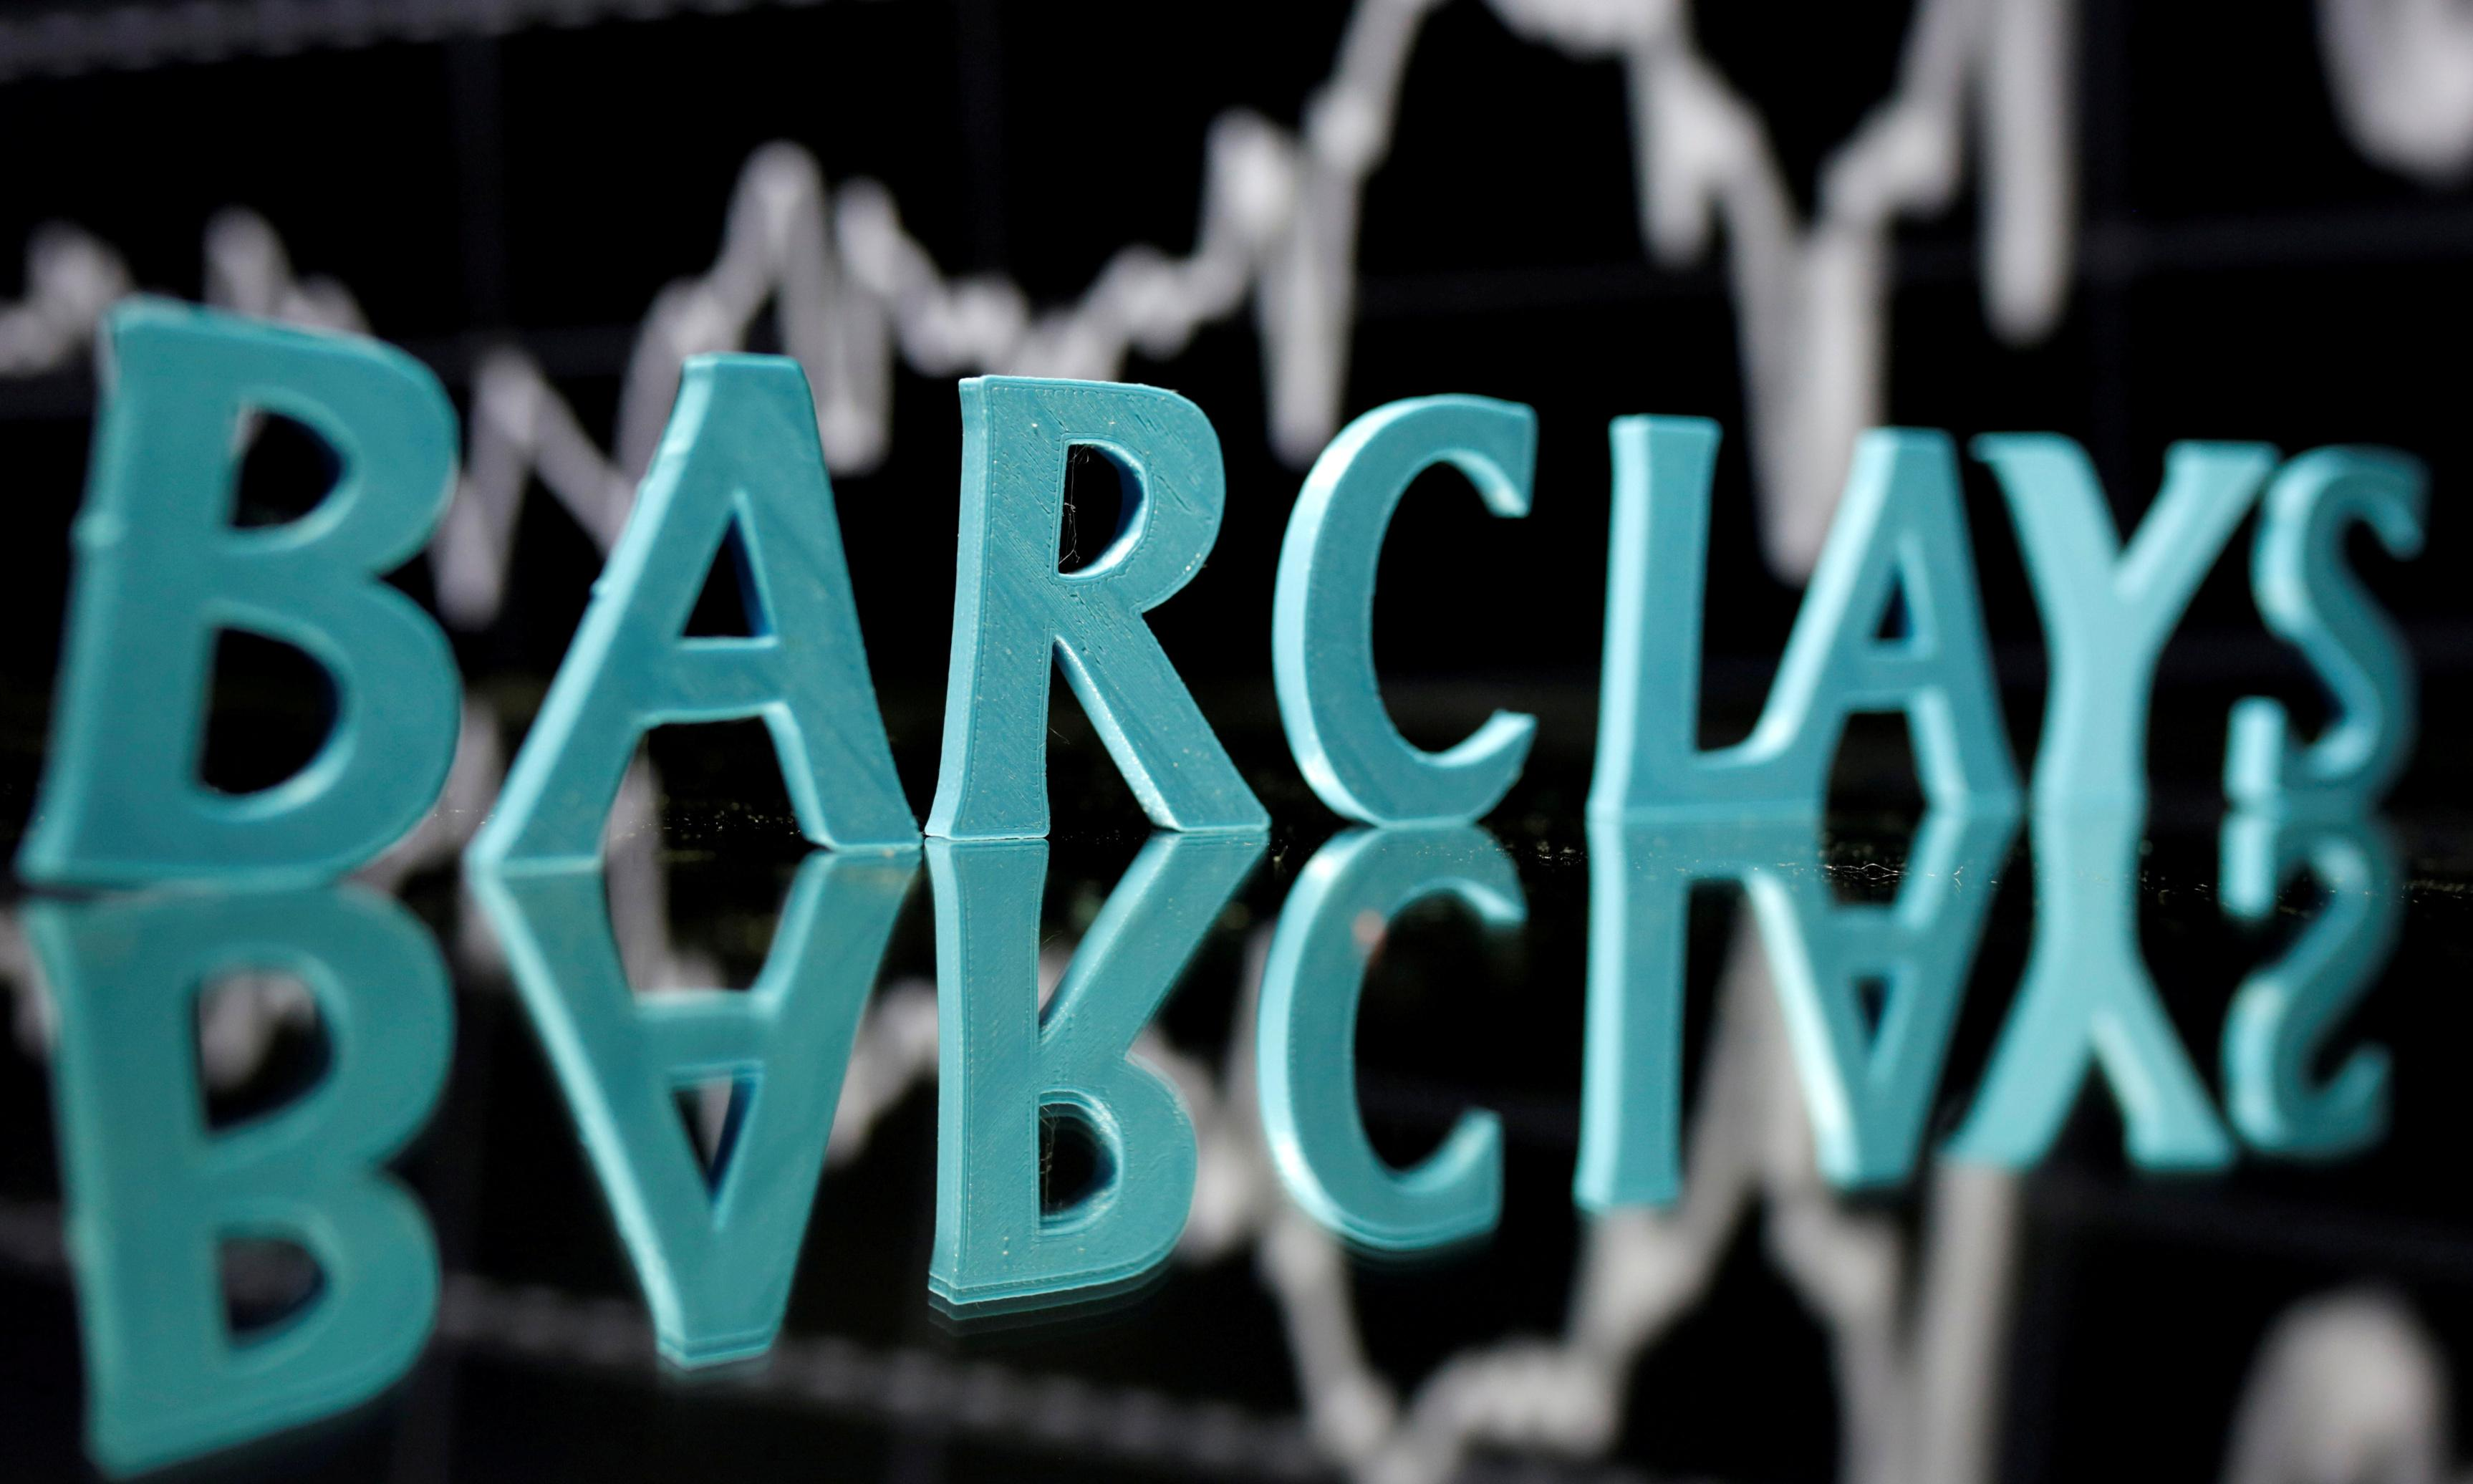 Barclays pledges to return more money to shareholders